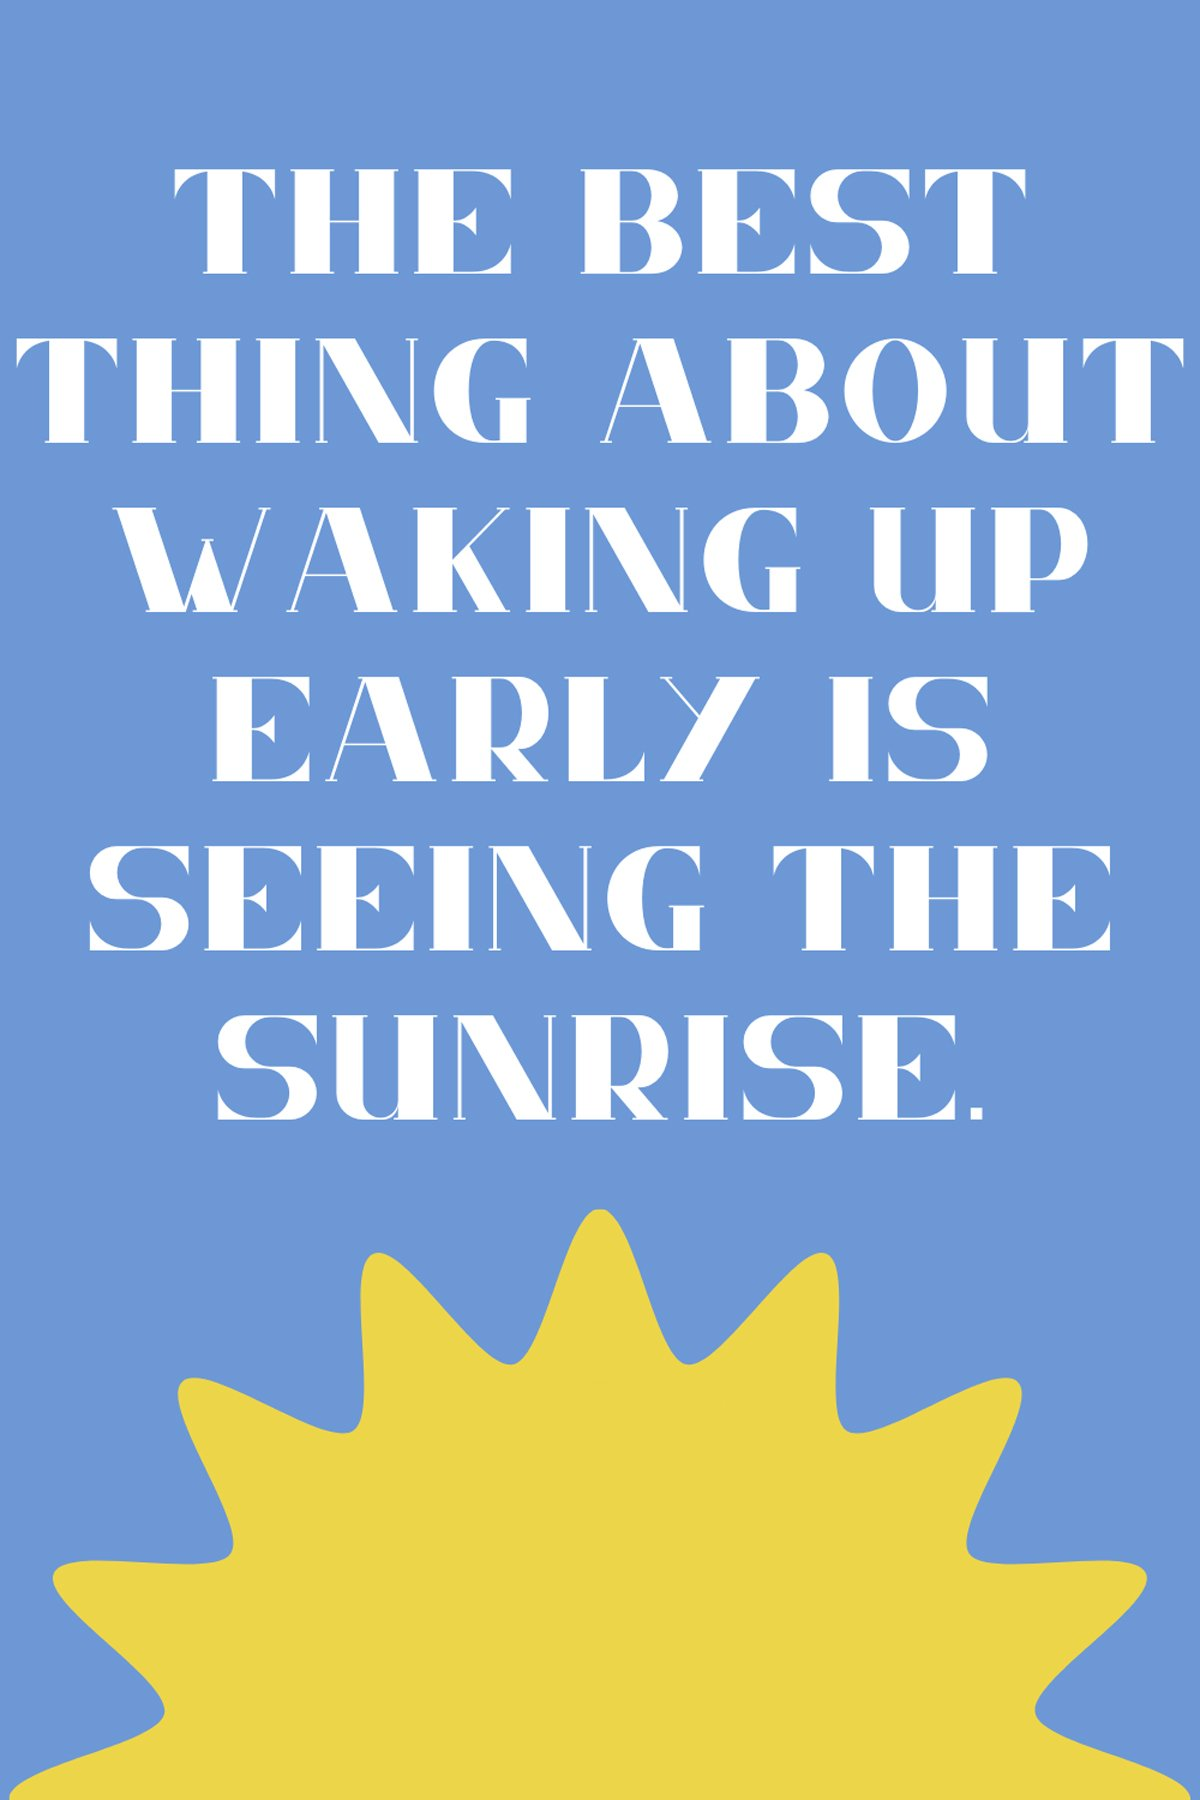 Sunrise Quotes For early Risers